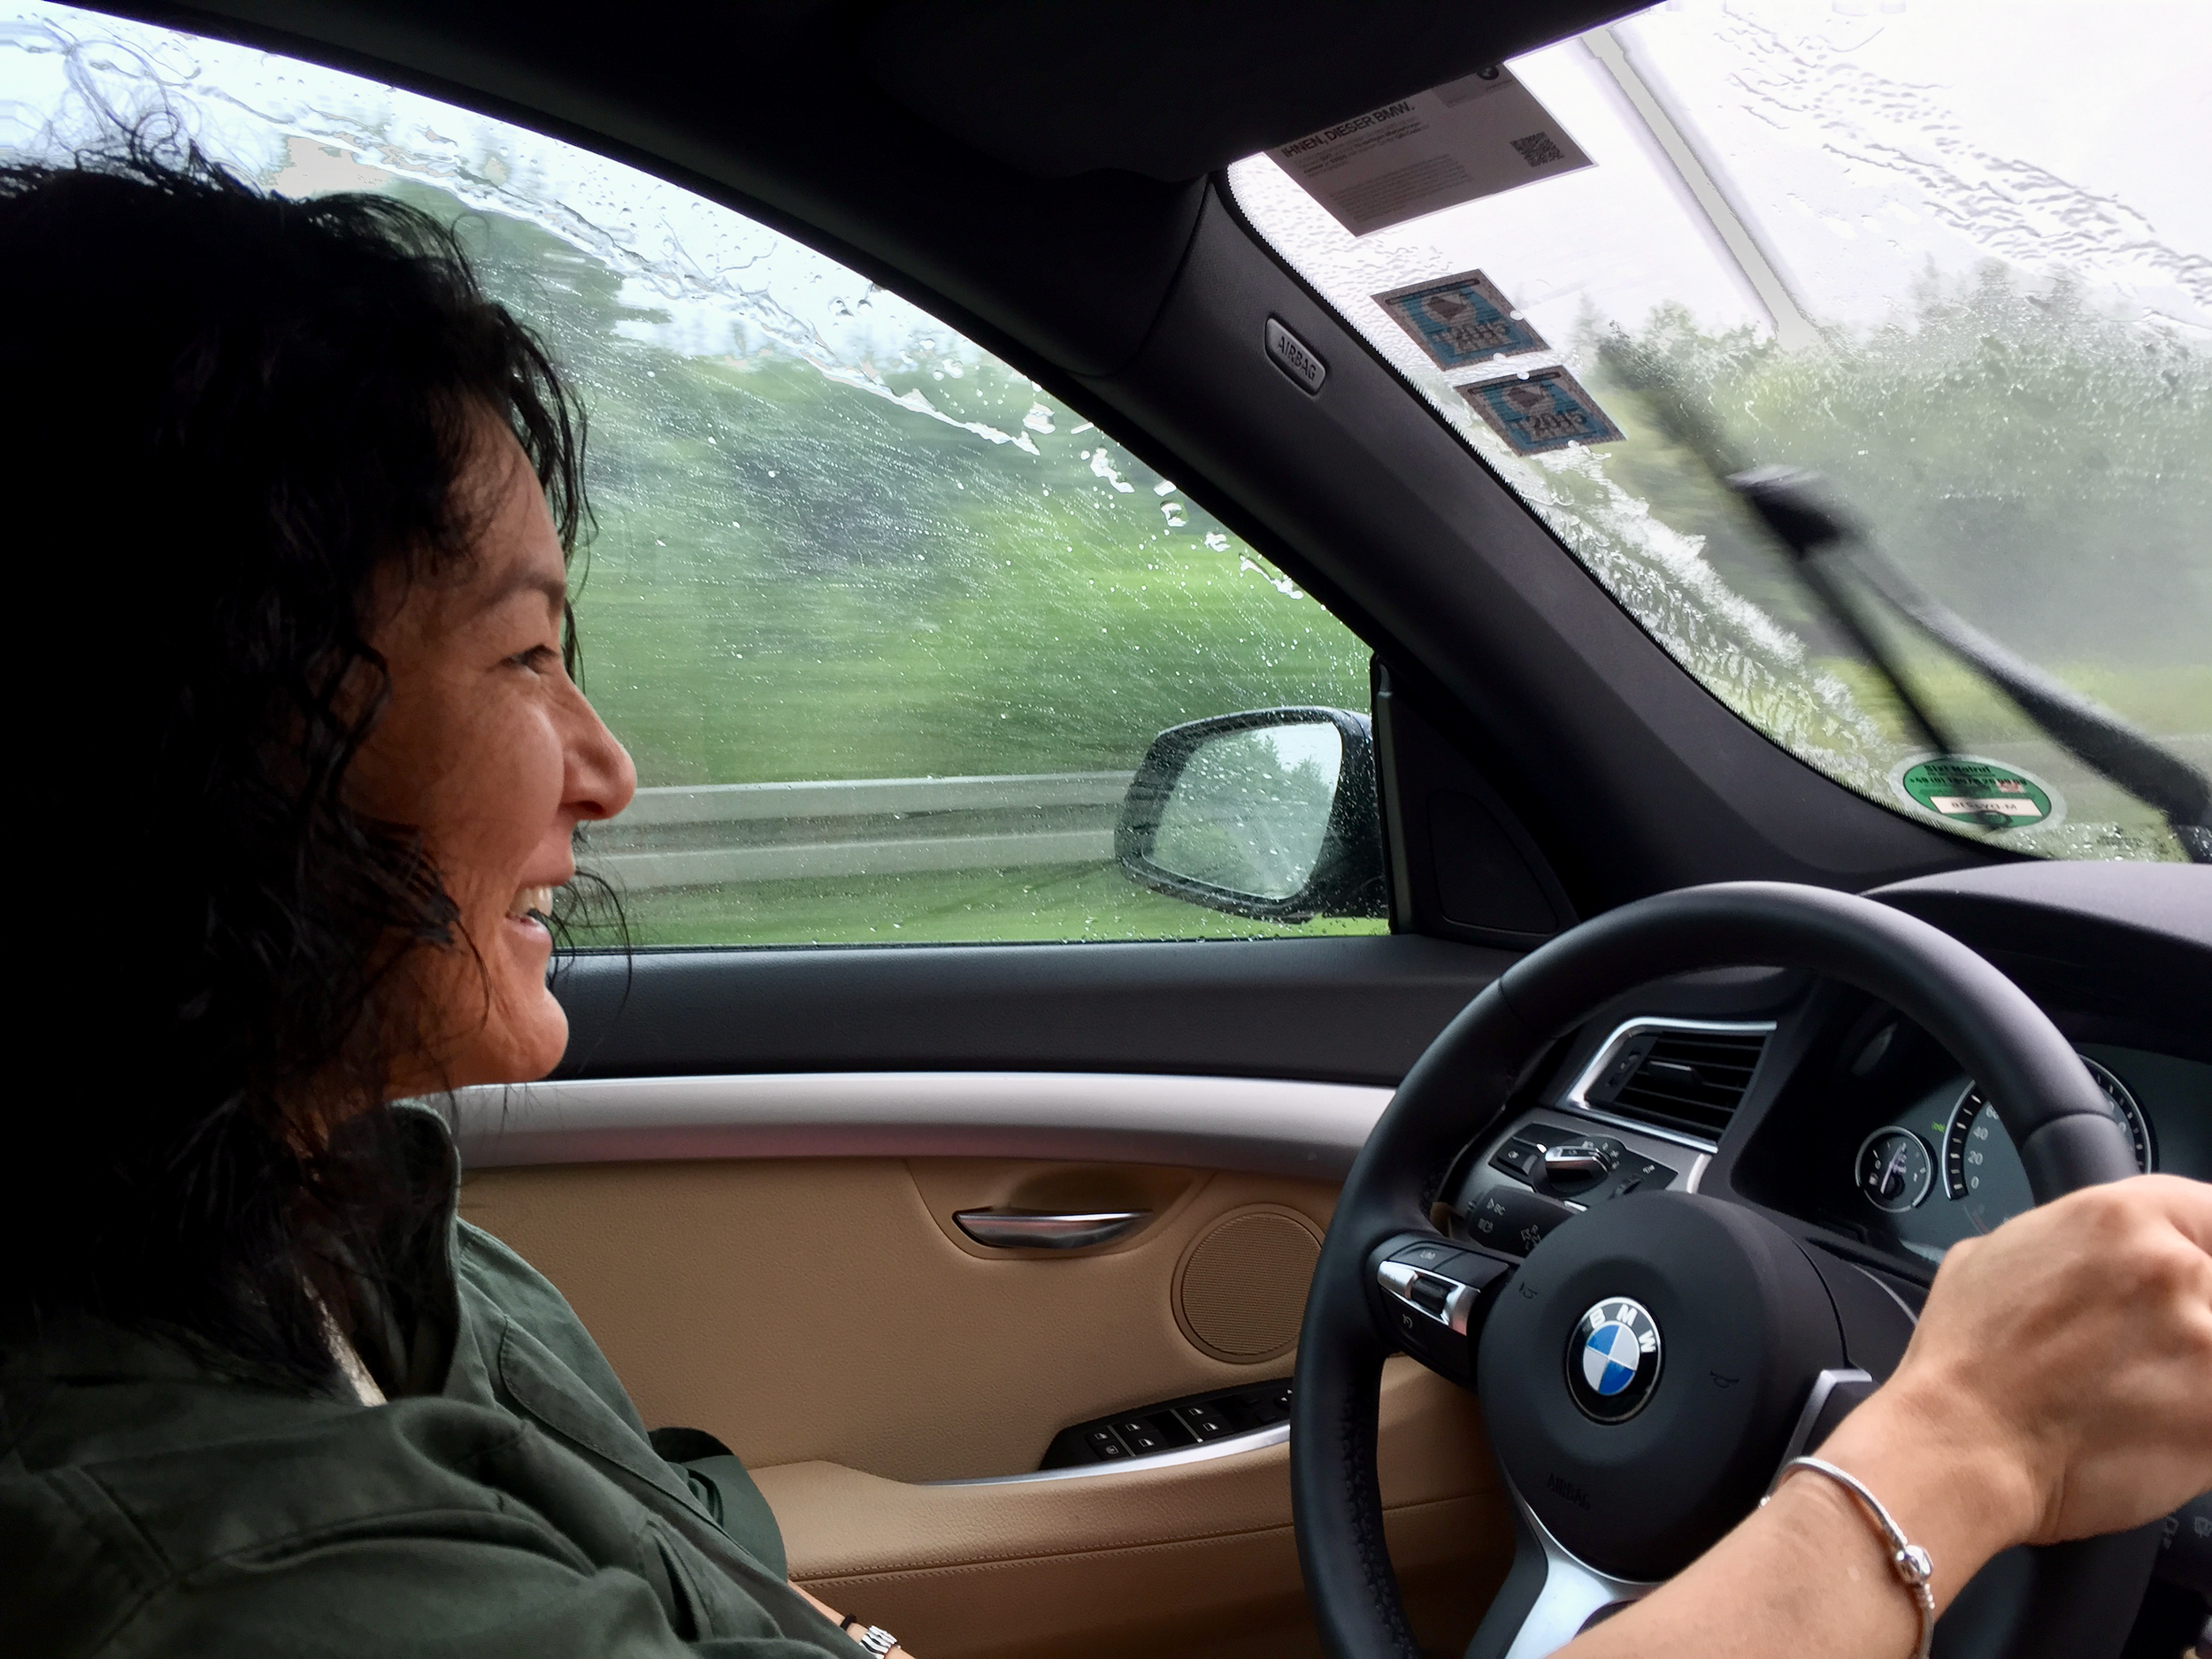 Mrs. Debrian Travels seemed to enjoy driving on the German Autobahn!  (click to enlarge)